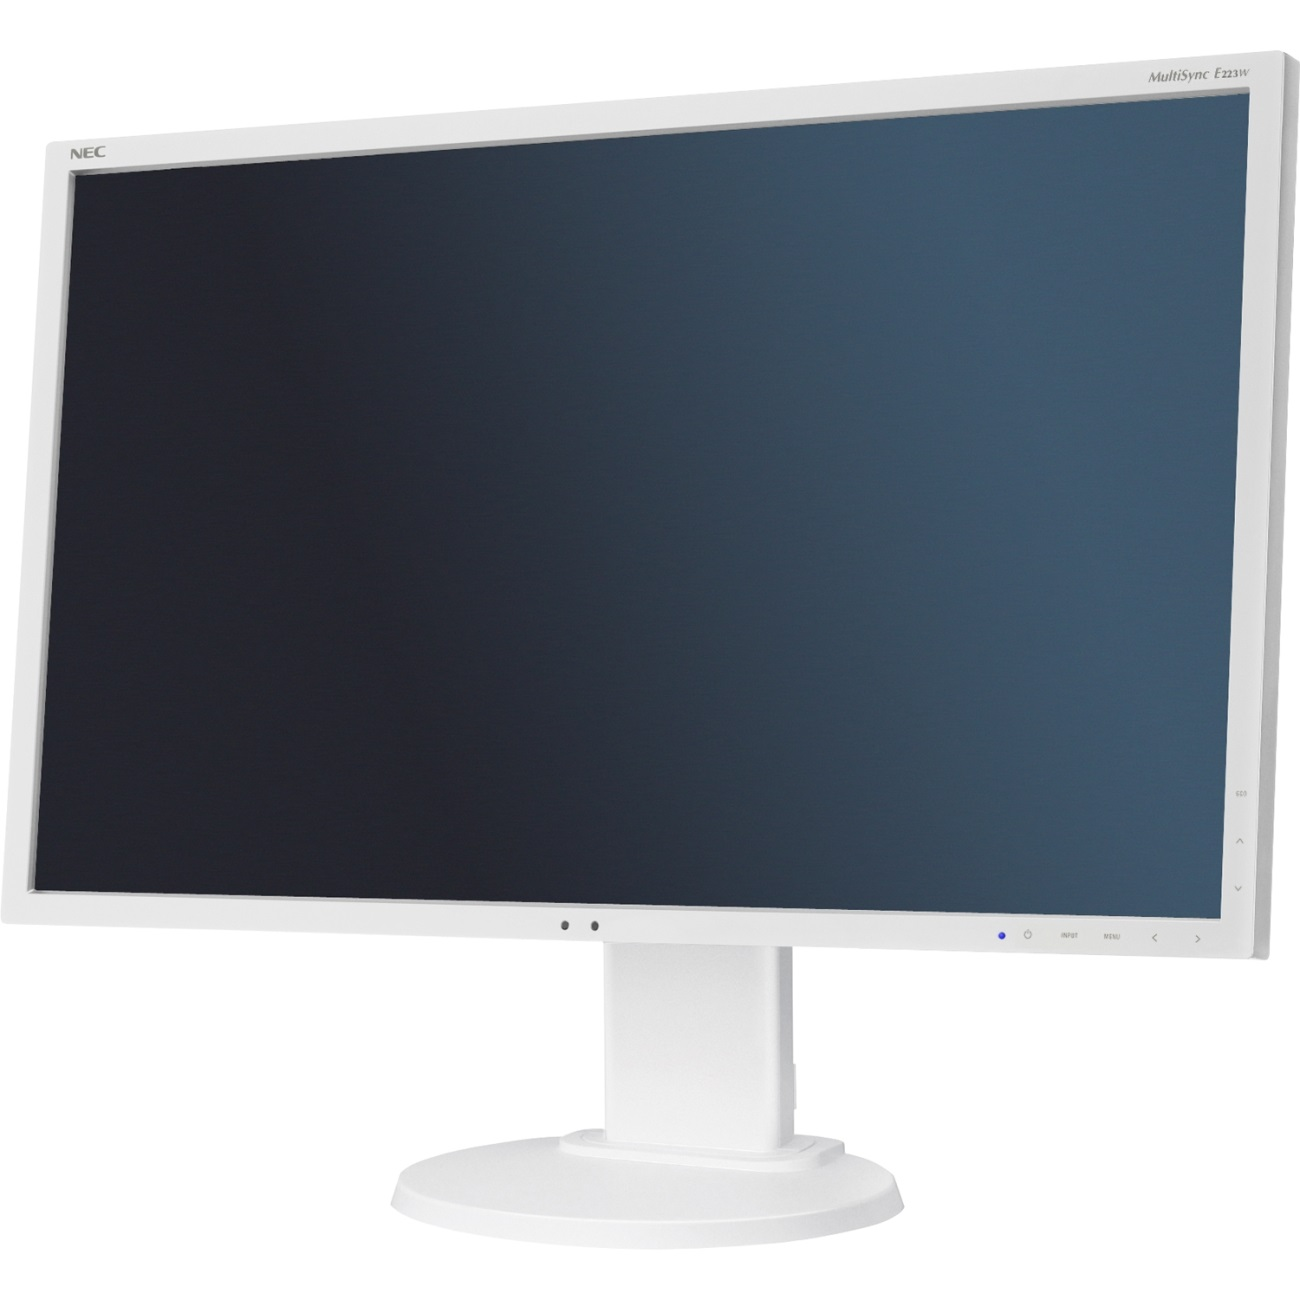 "NEC 22"" E223W - 1680x1050, TN, W-LED, 250cd, D-sub, DVI, DP, černý"